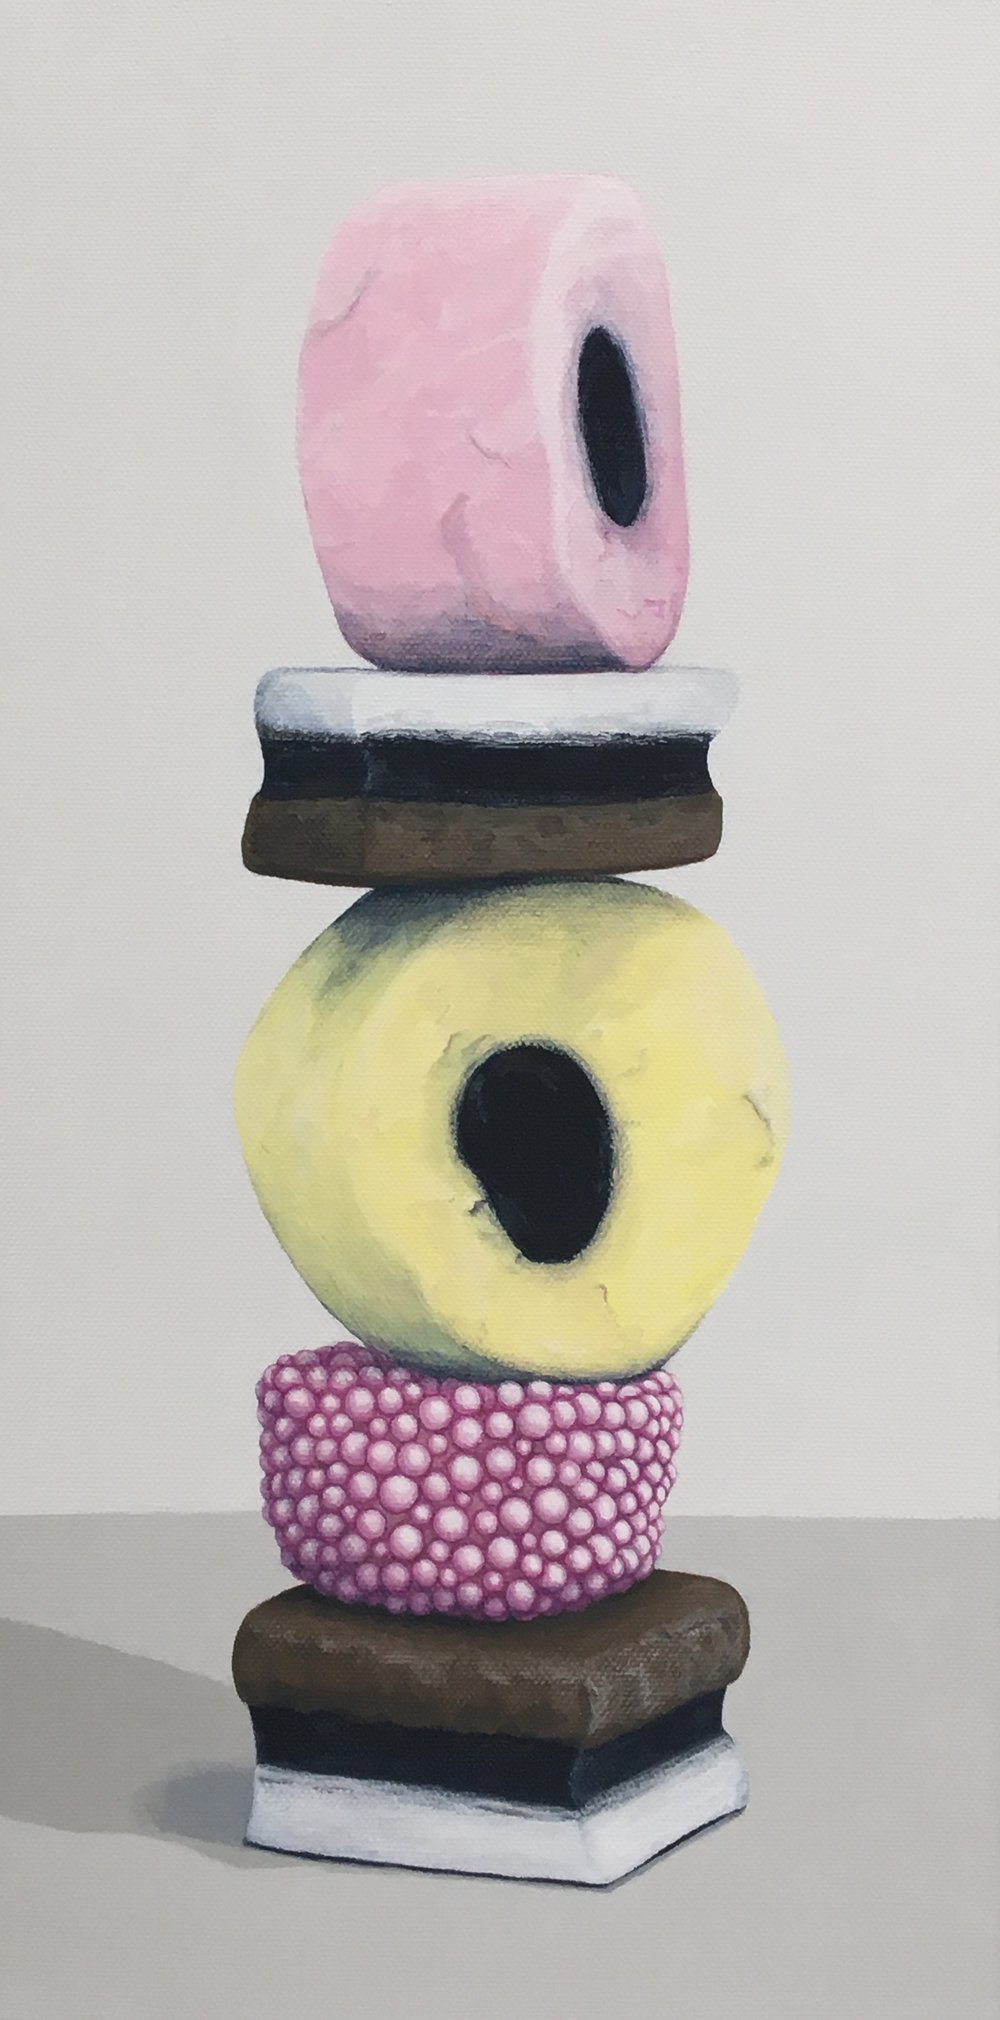 "Totem: Allsorts IV   This enticing candy stacks is a delightful temptation. As a culture we are generally attracted to these charming colors and interesting shapes, but once the candy is experienced as a food there is often a mismatch between its attractiveness and its taste. This work explores the occurrence of the incongruity of appearance and experience.   Currently available through Simon Breitbard Fine Arts   http://sbfinearts.com ,  415-951-1969   8"" x 16"" gallery wrapped canvas  $400.00"